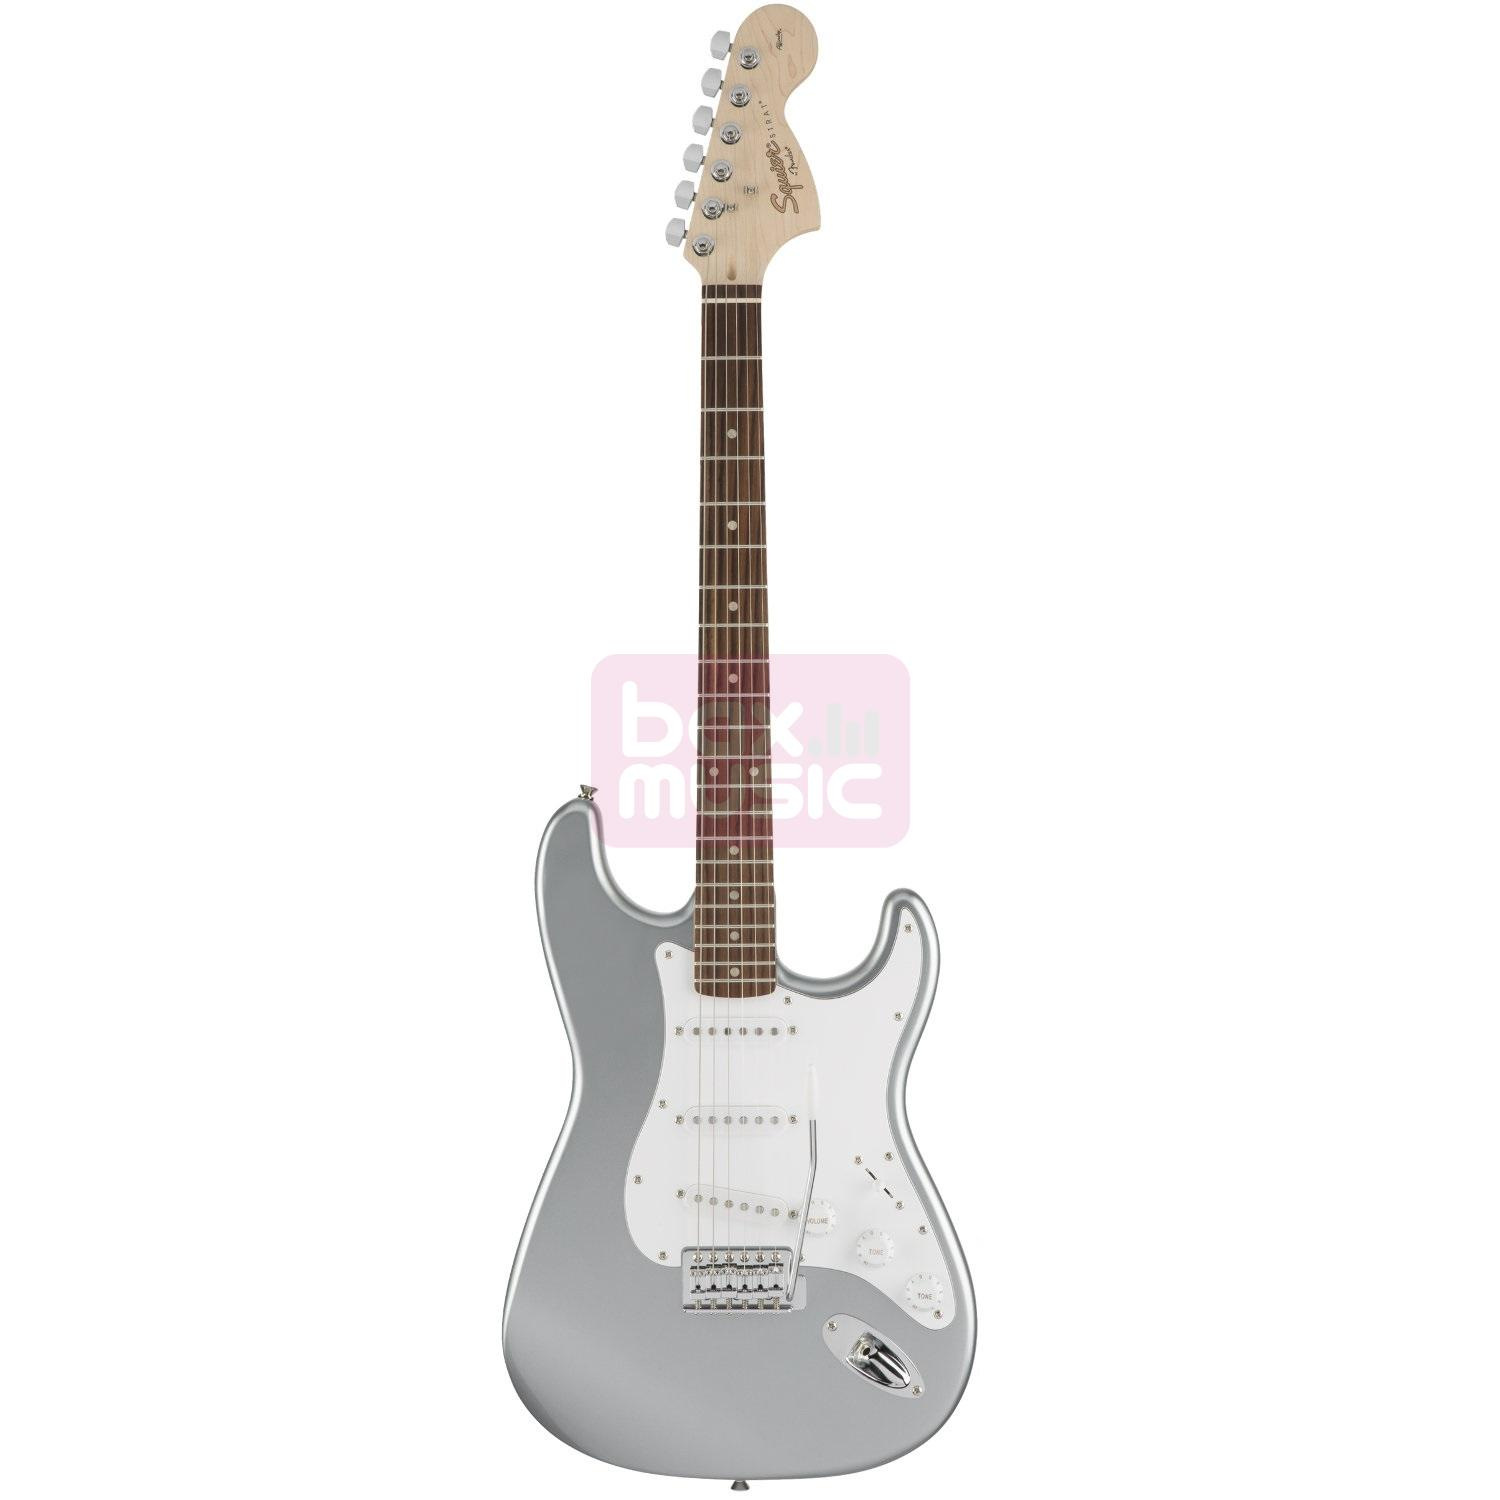 Squier Affinity Stratocaster Slick Silver RW